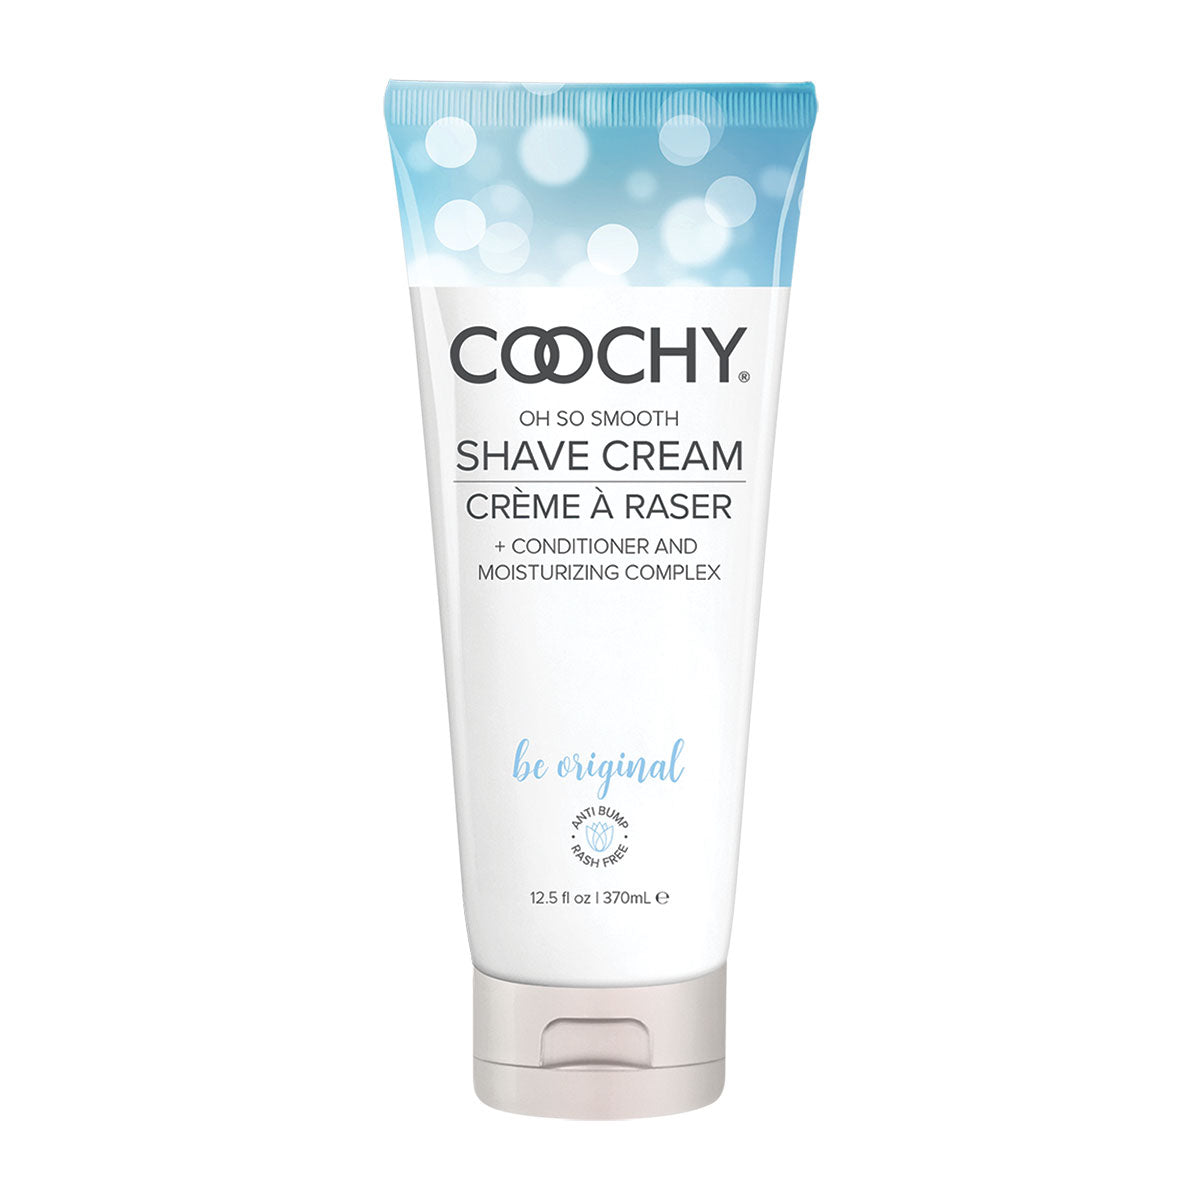 Coochy Oh So Smooth Shave Cream - Be Original 12.5